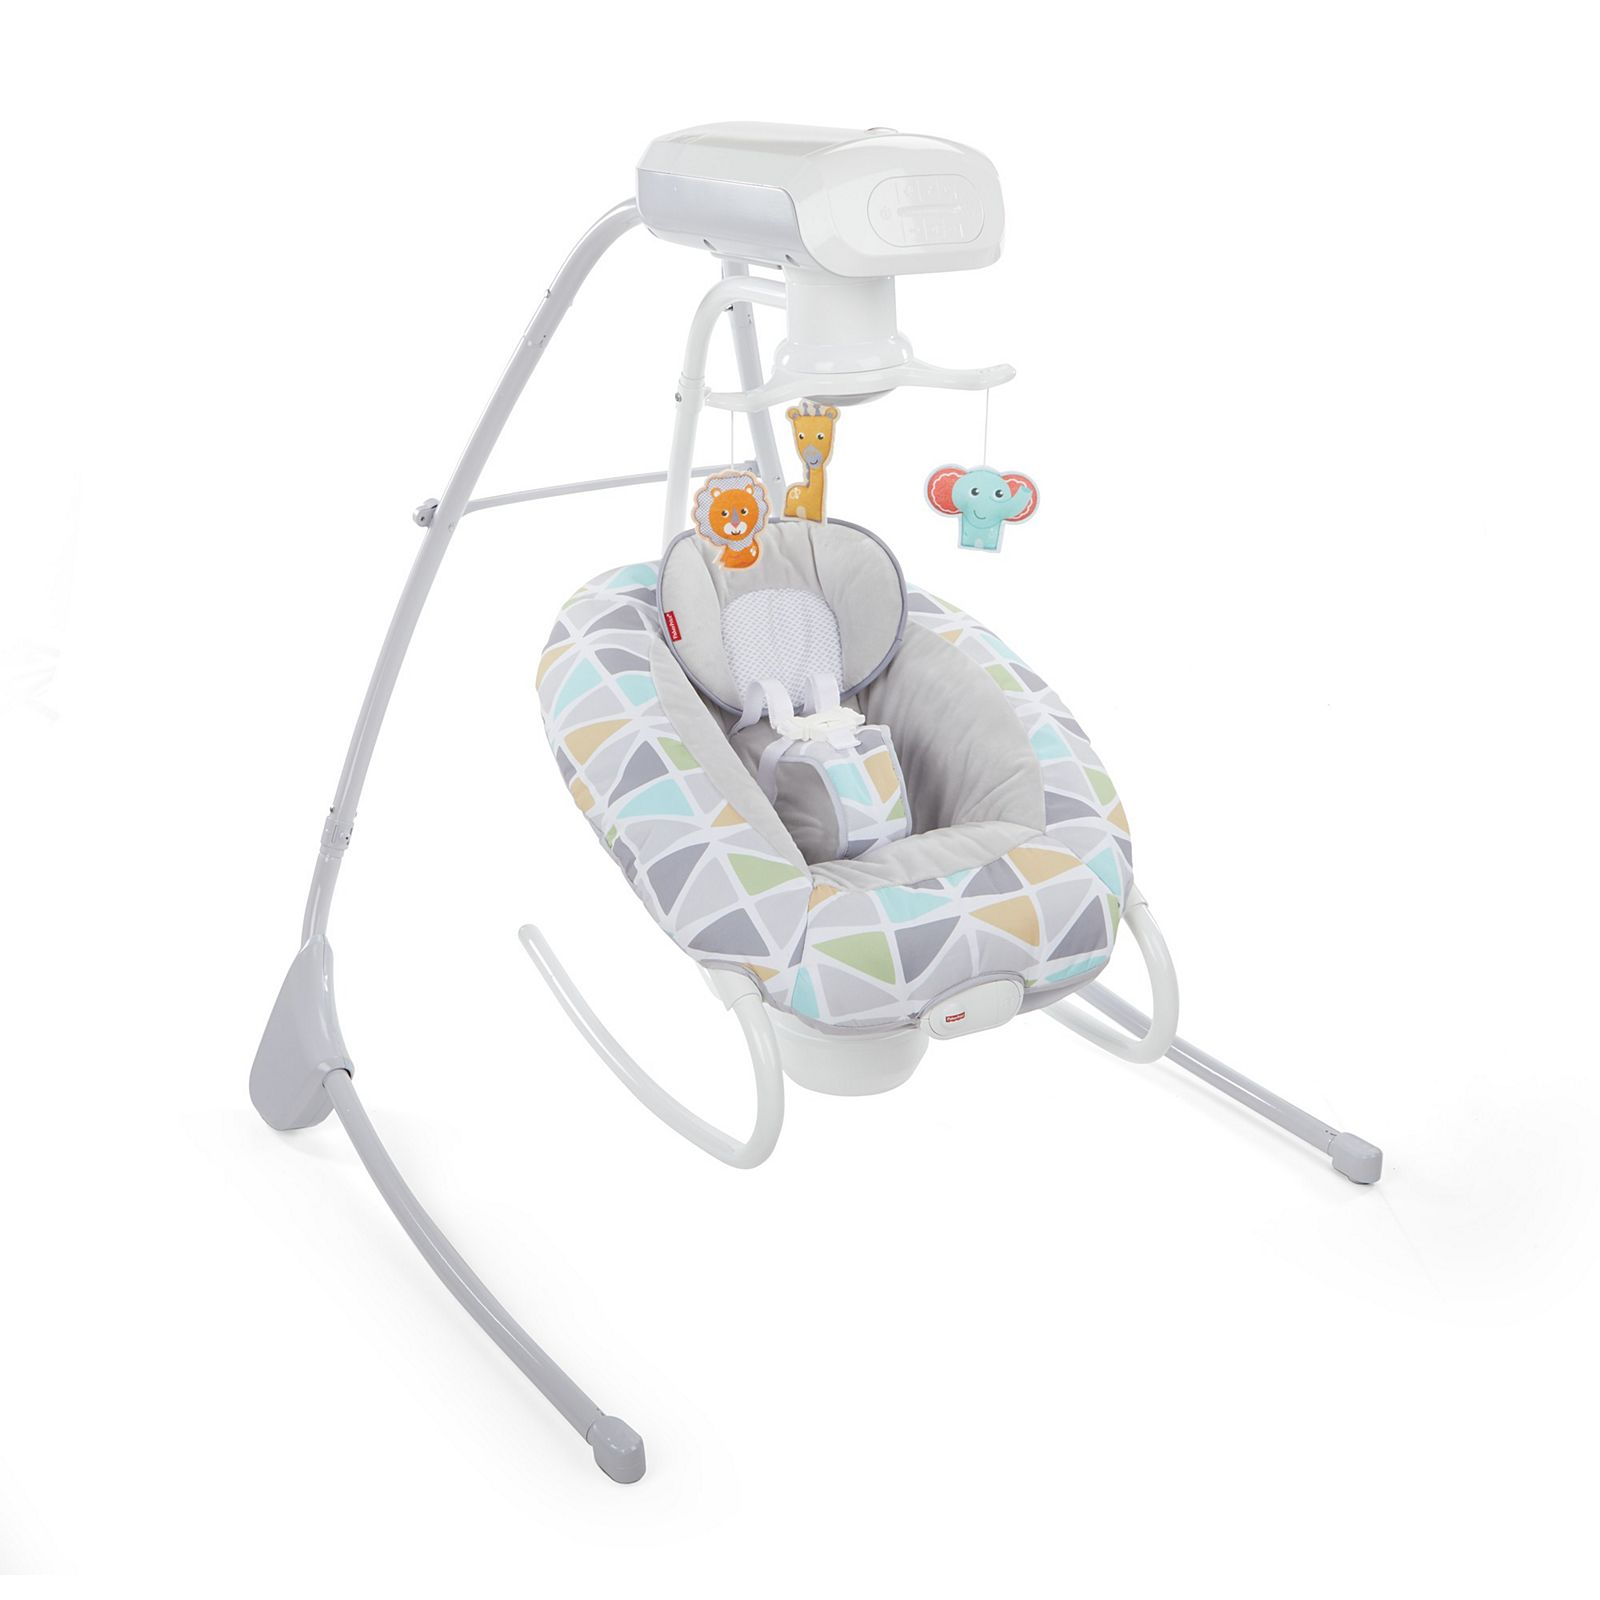 2 In 1 Deluxe Cradle N Swing